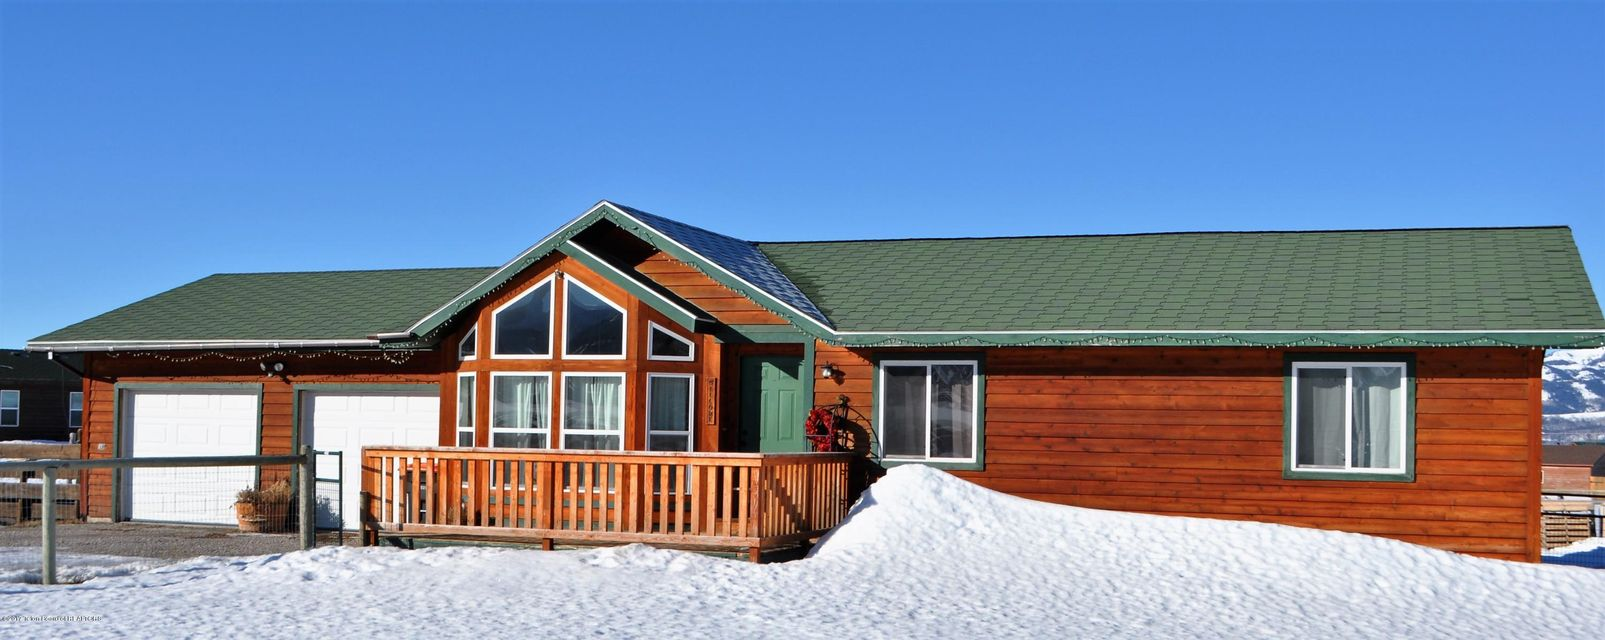 5026 S 500, Victor, ID 83455